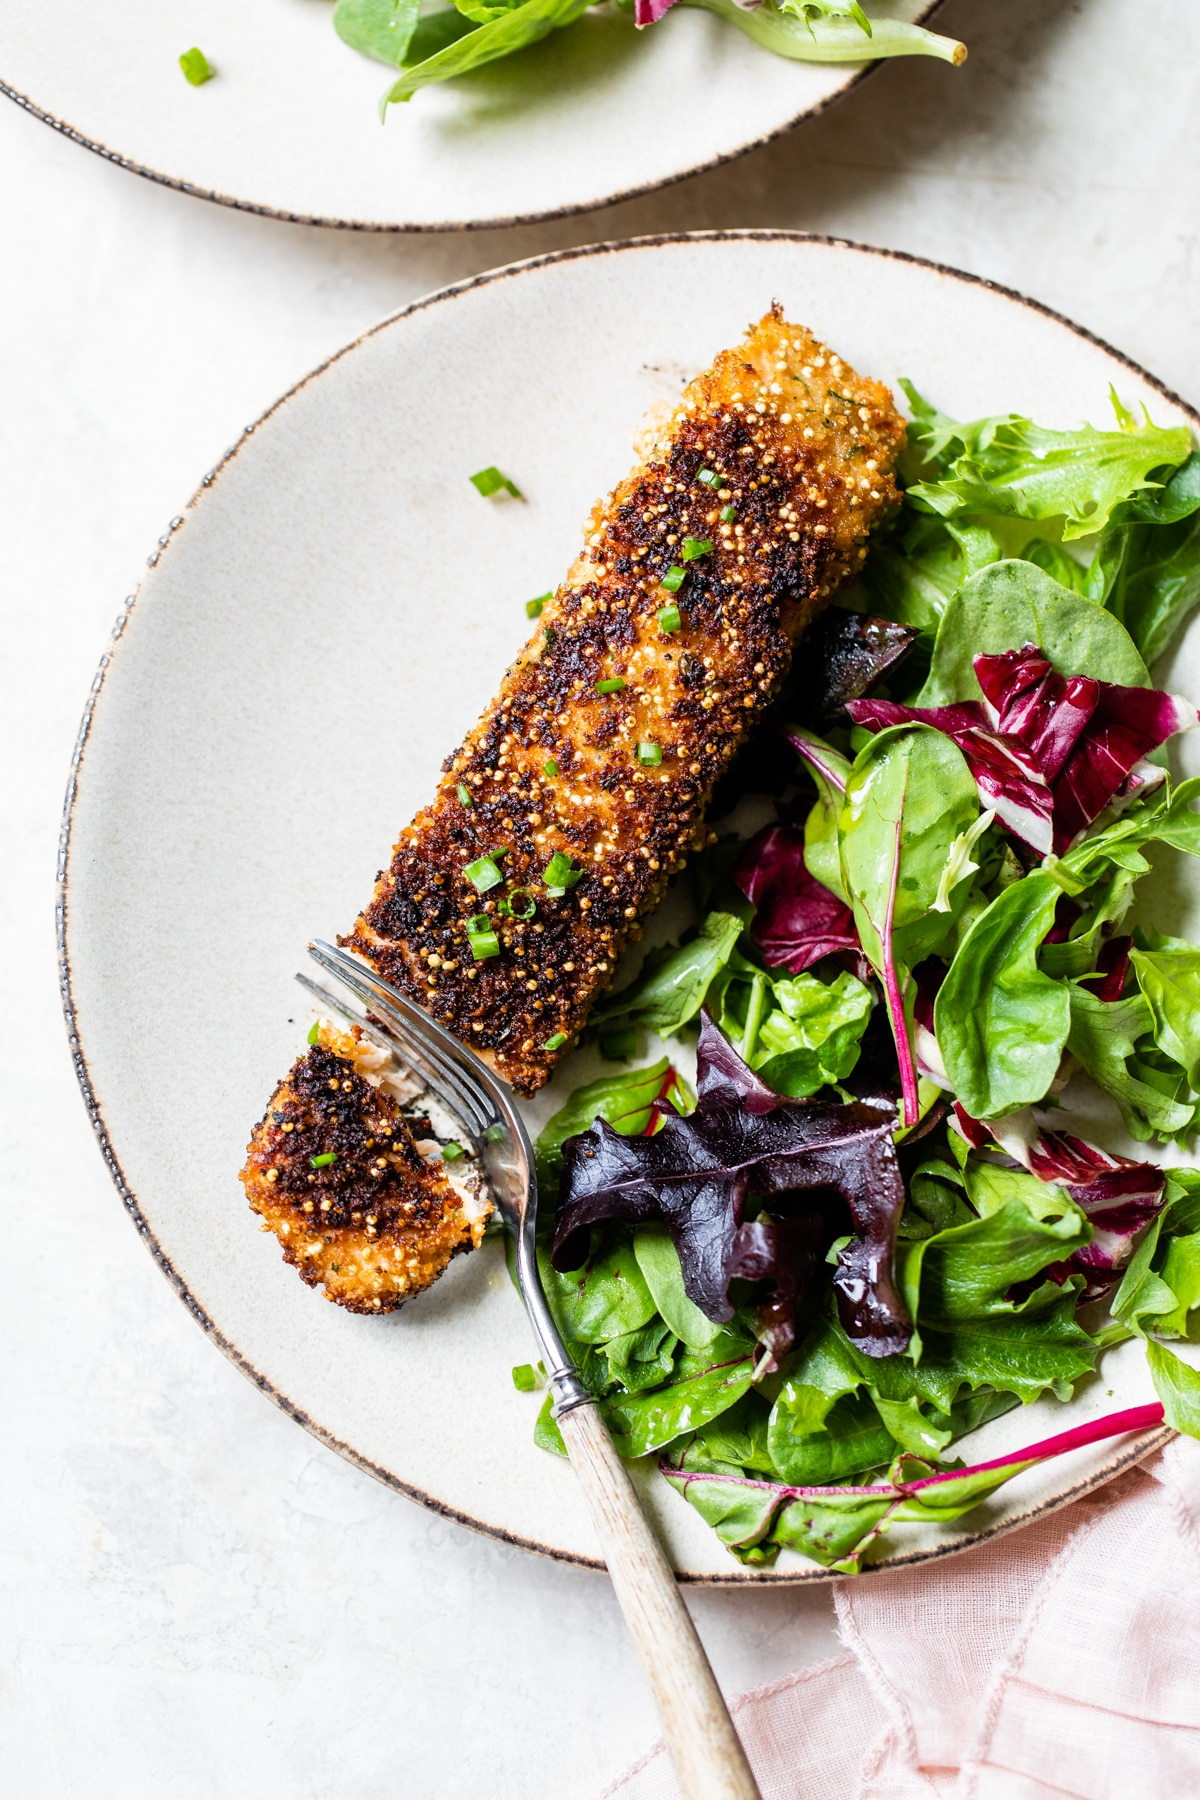 A plate of food on a table, with Salmon and Quinoa